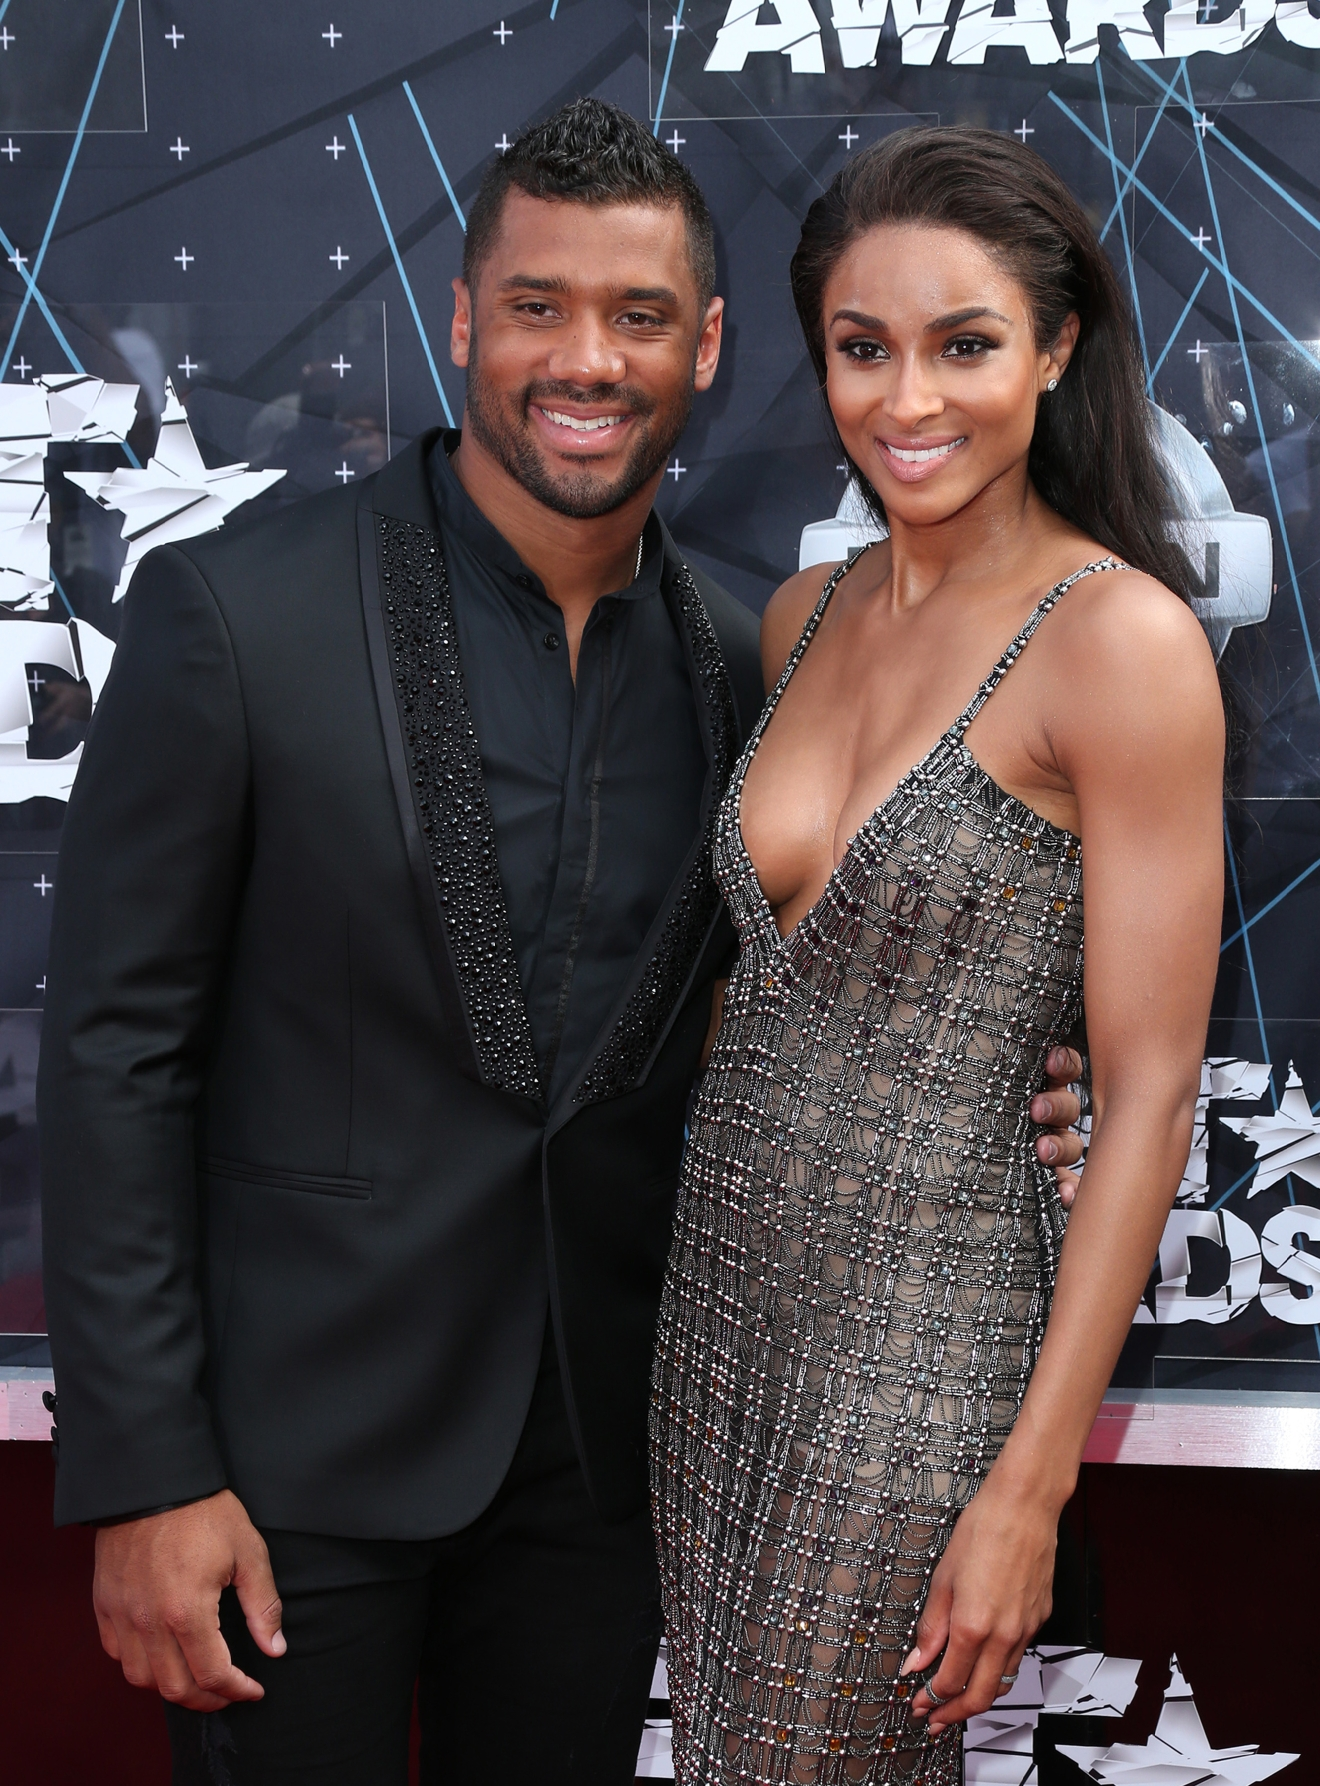 Russell Wilson & Ciara arrive at the 2015 BET Awards on June 28, 2015 in Los Angeles, California. (Photo: FayesVision/WENN.com)